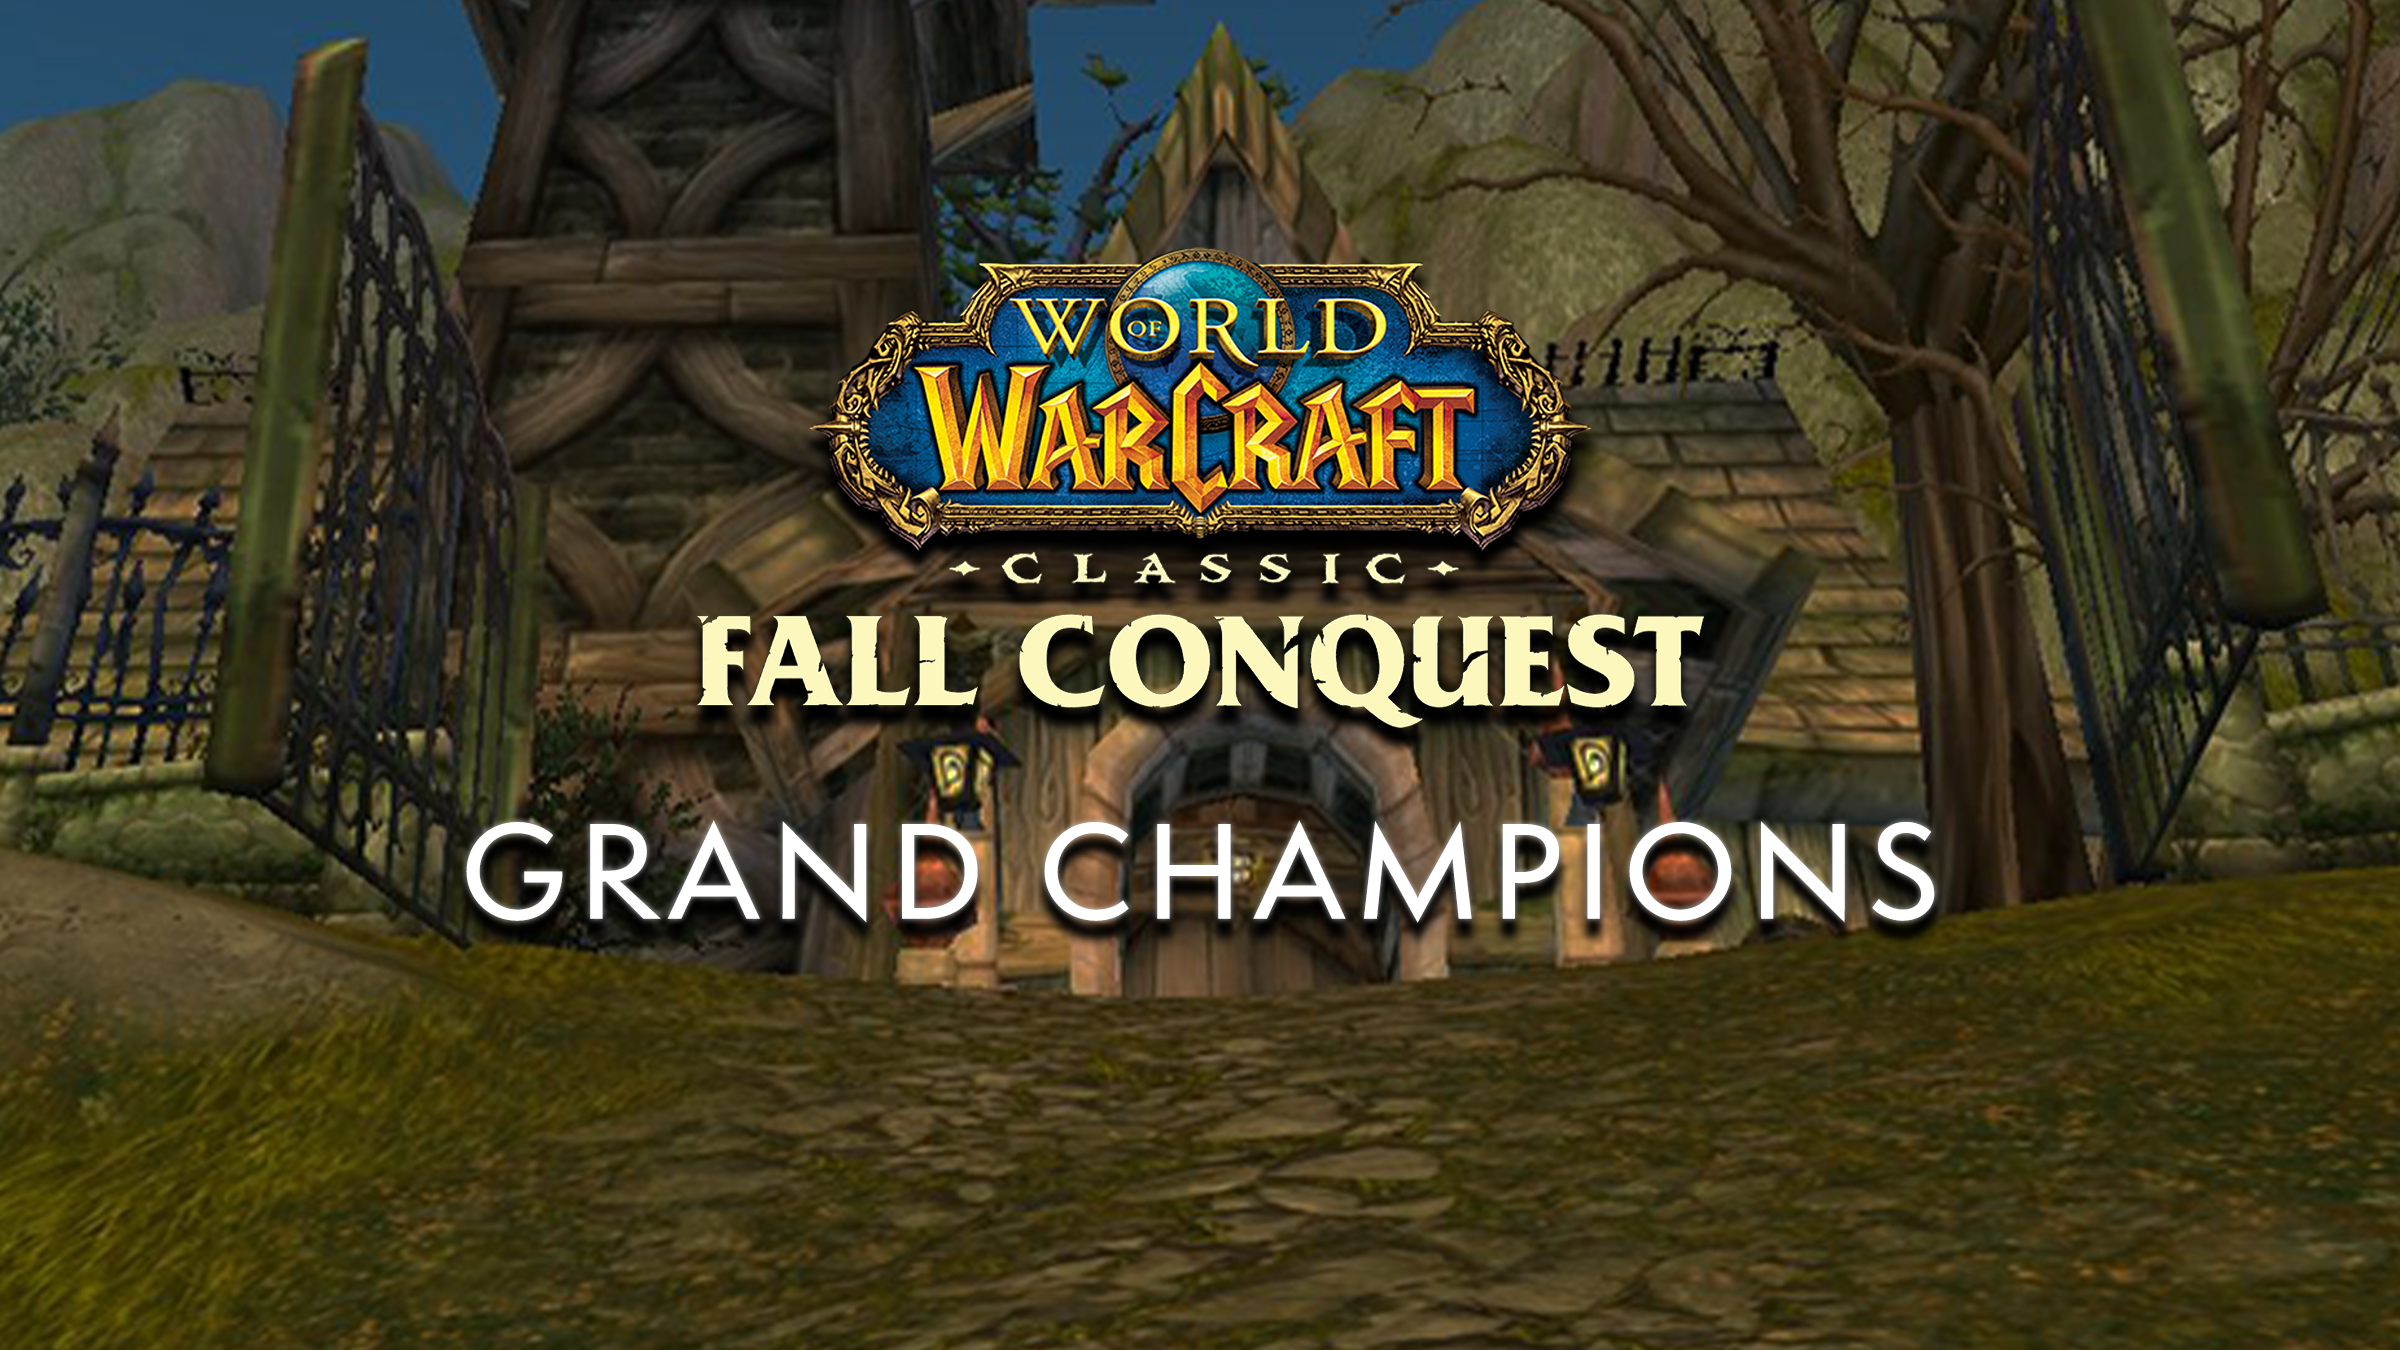 Meet the WoW Classic Fall Conquest Regional Champions!